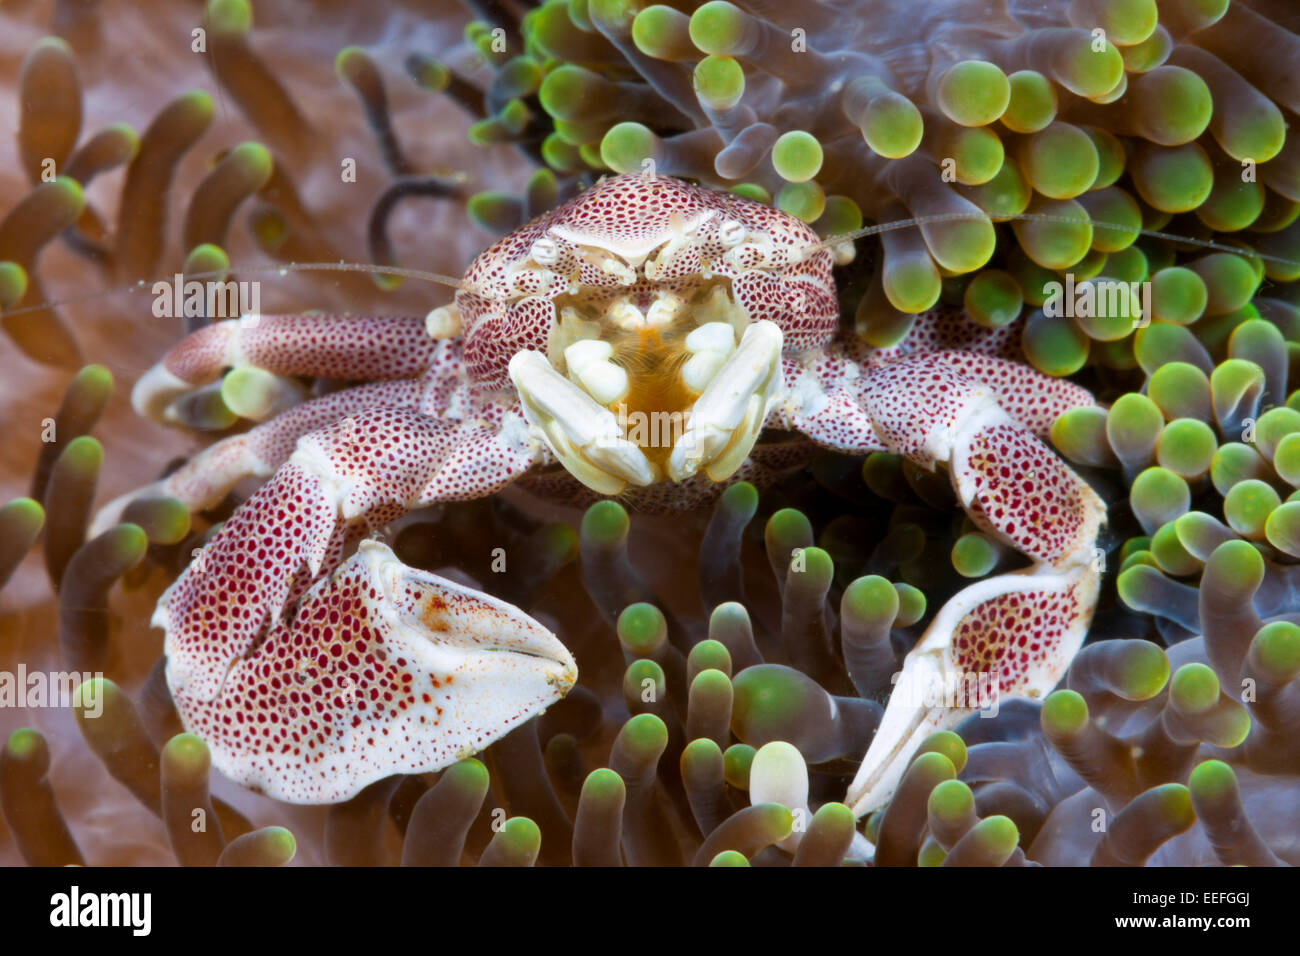 Porcelain Crab associated with Sea Anemone, Neopetrolisthes maculatus, Ambon, Moluccas, Indonesia - Stock Image